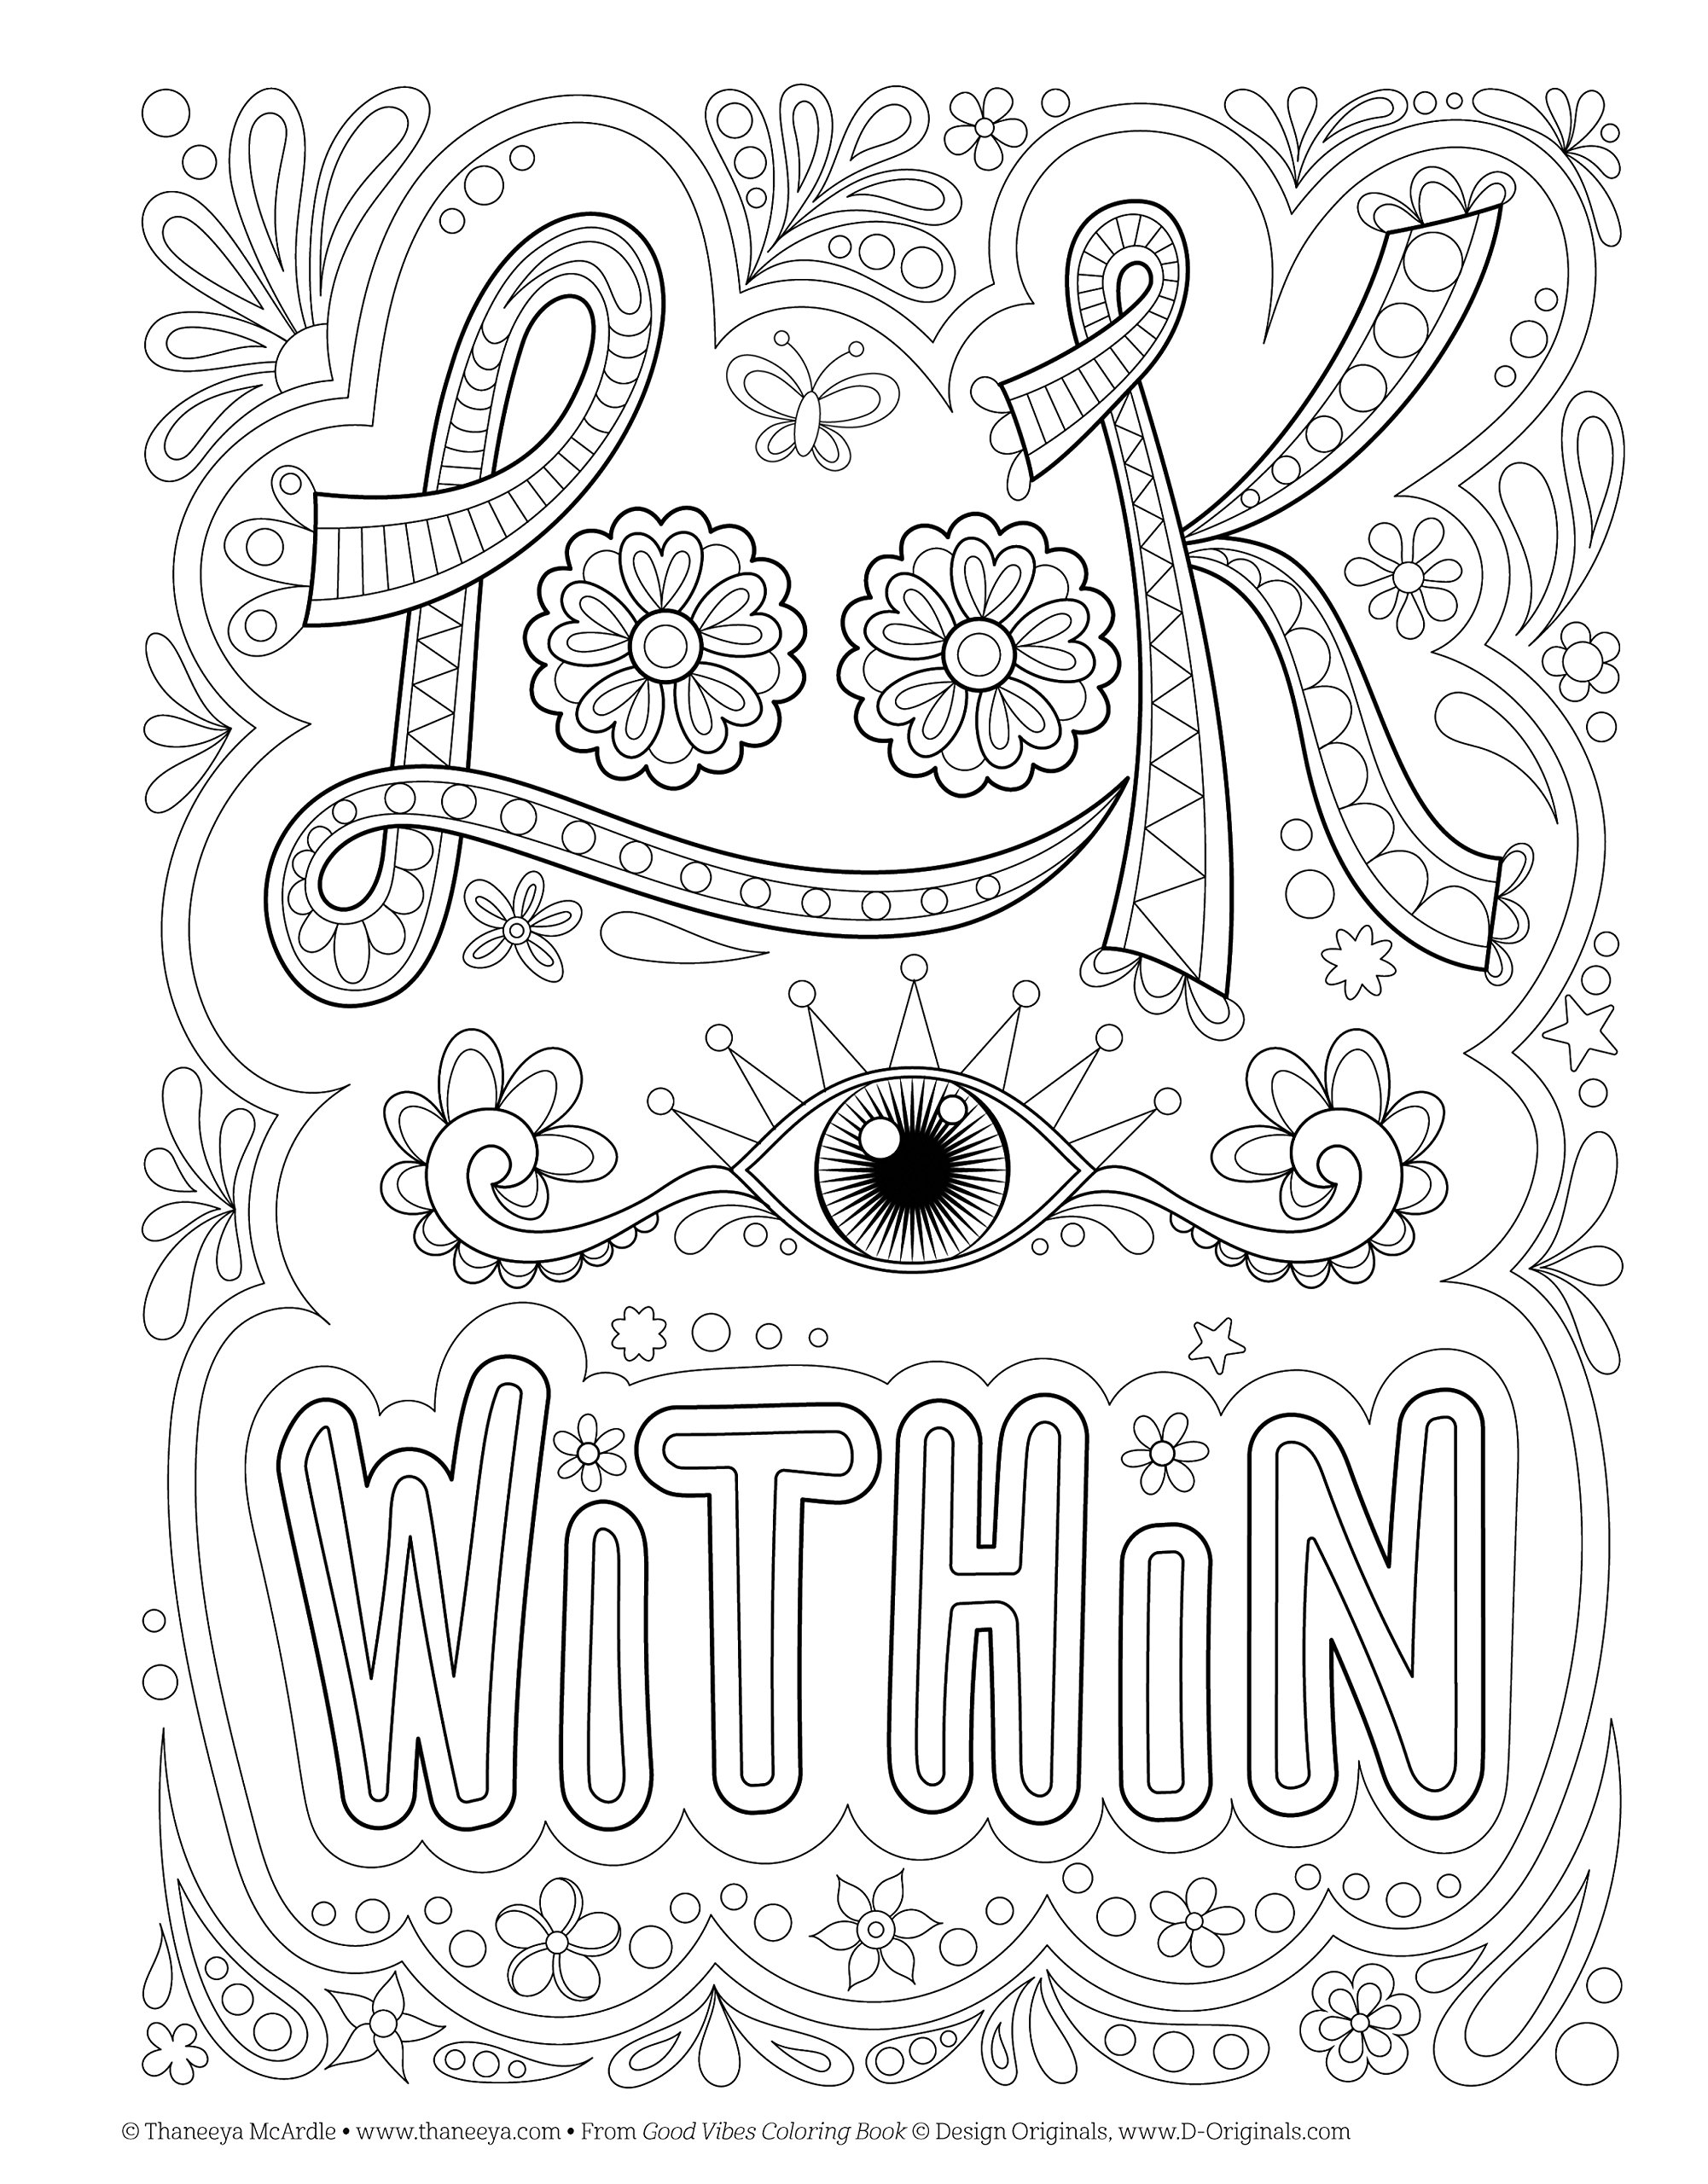 Good Vibes Coloring Book (Coloring is Fun) (Design Originals): 30 ...